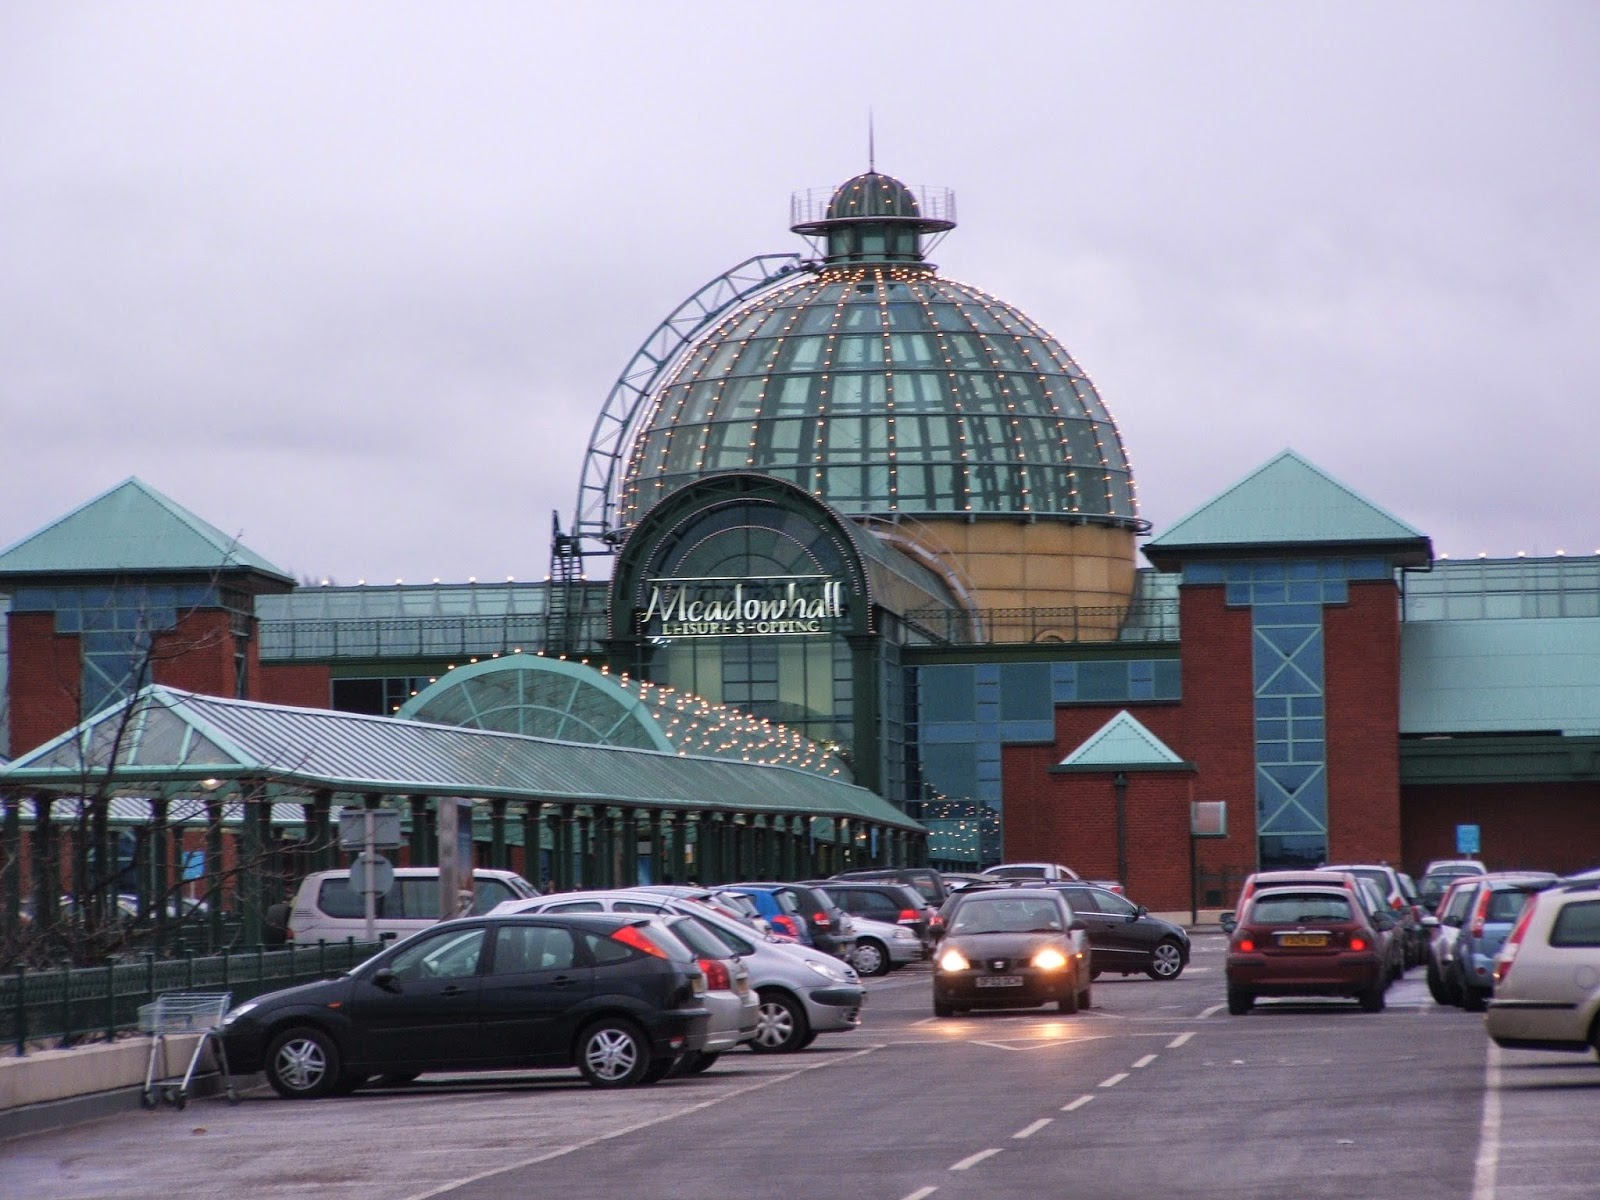 Sheffield, Meadowhall (Preferred). Sugar Box – Meadowhall. The store is opening on November 1 in one of the largest and busiest shopping centres in the UK.